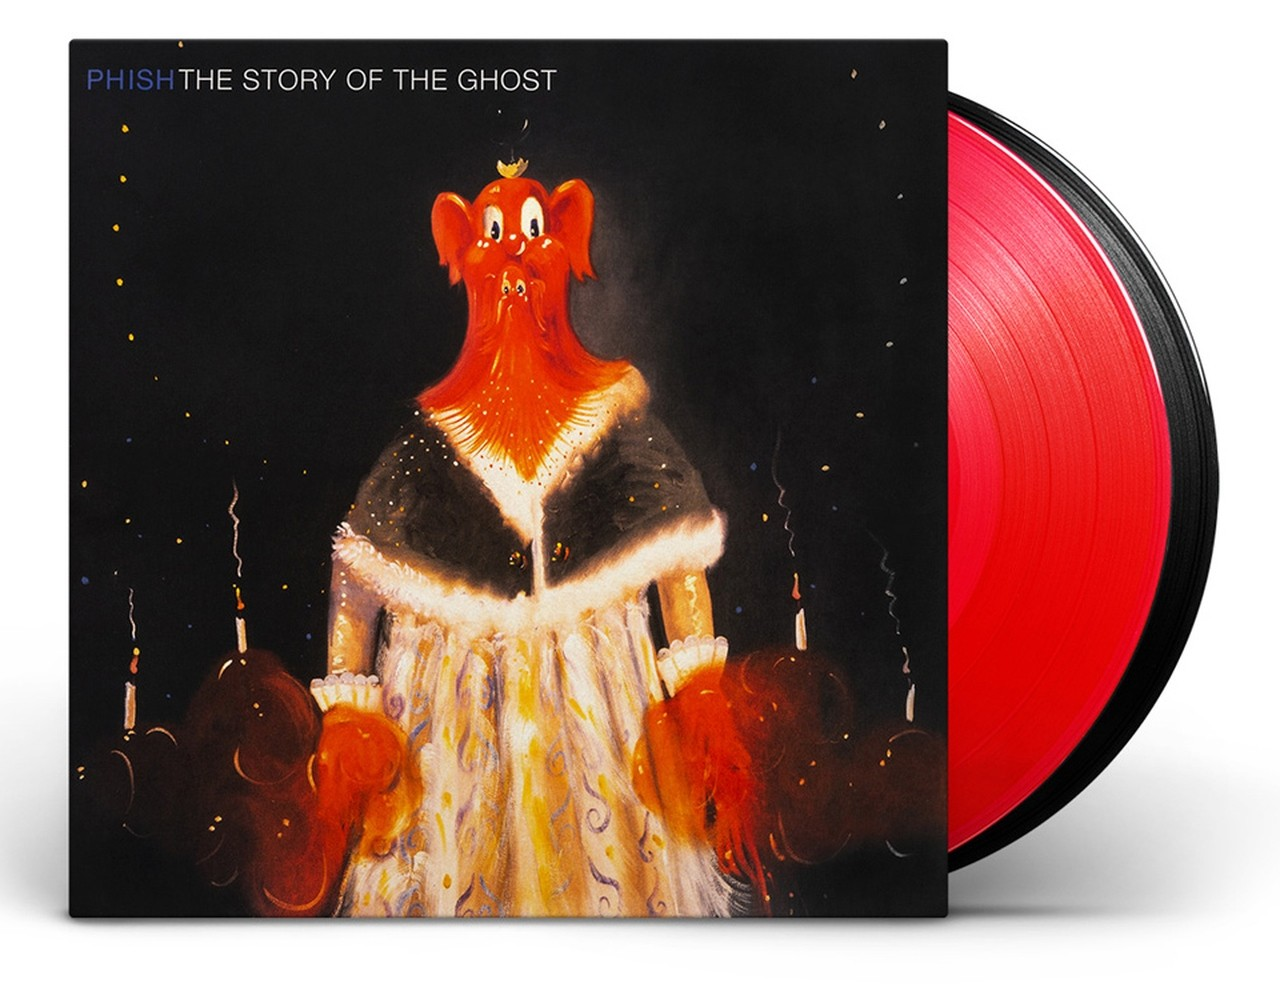 Phish - The Story of The Ghost (Red/Black) 2XLP Vinyl